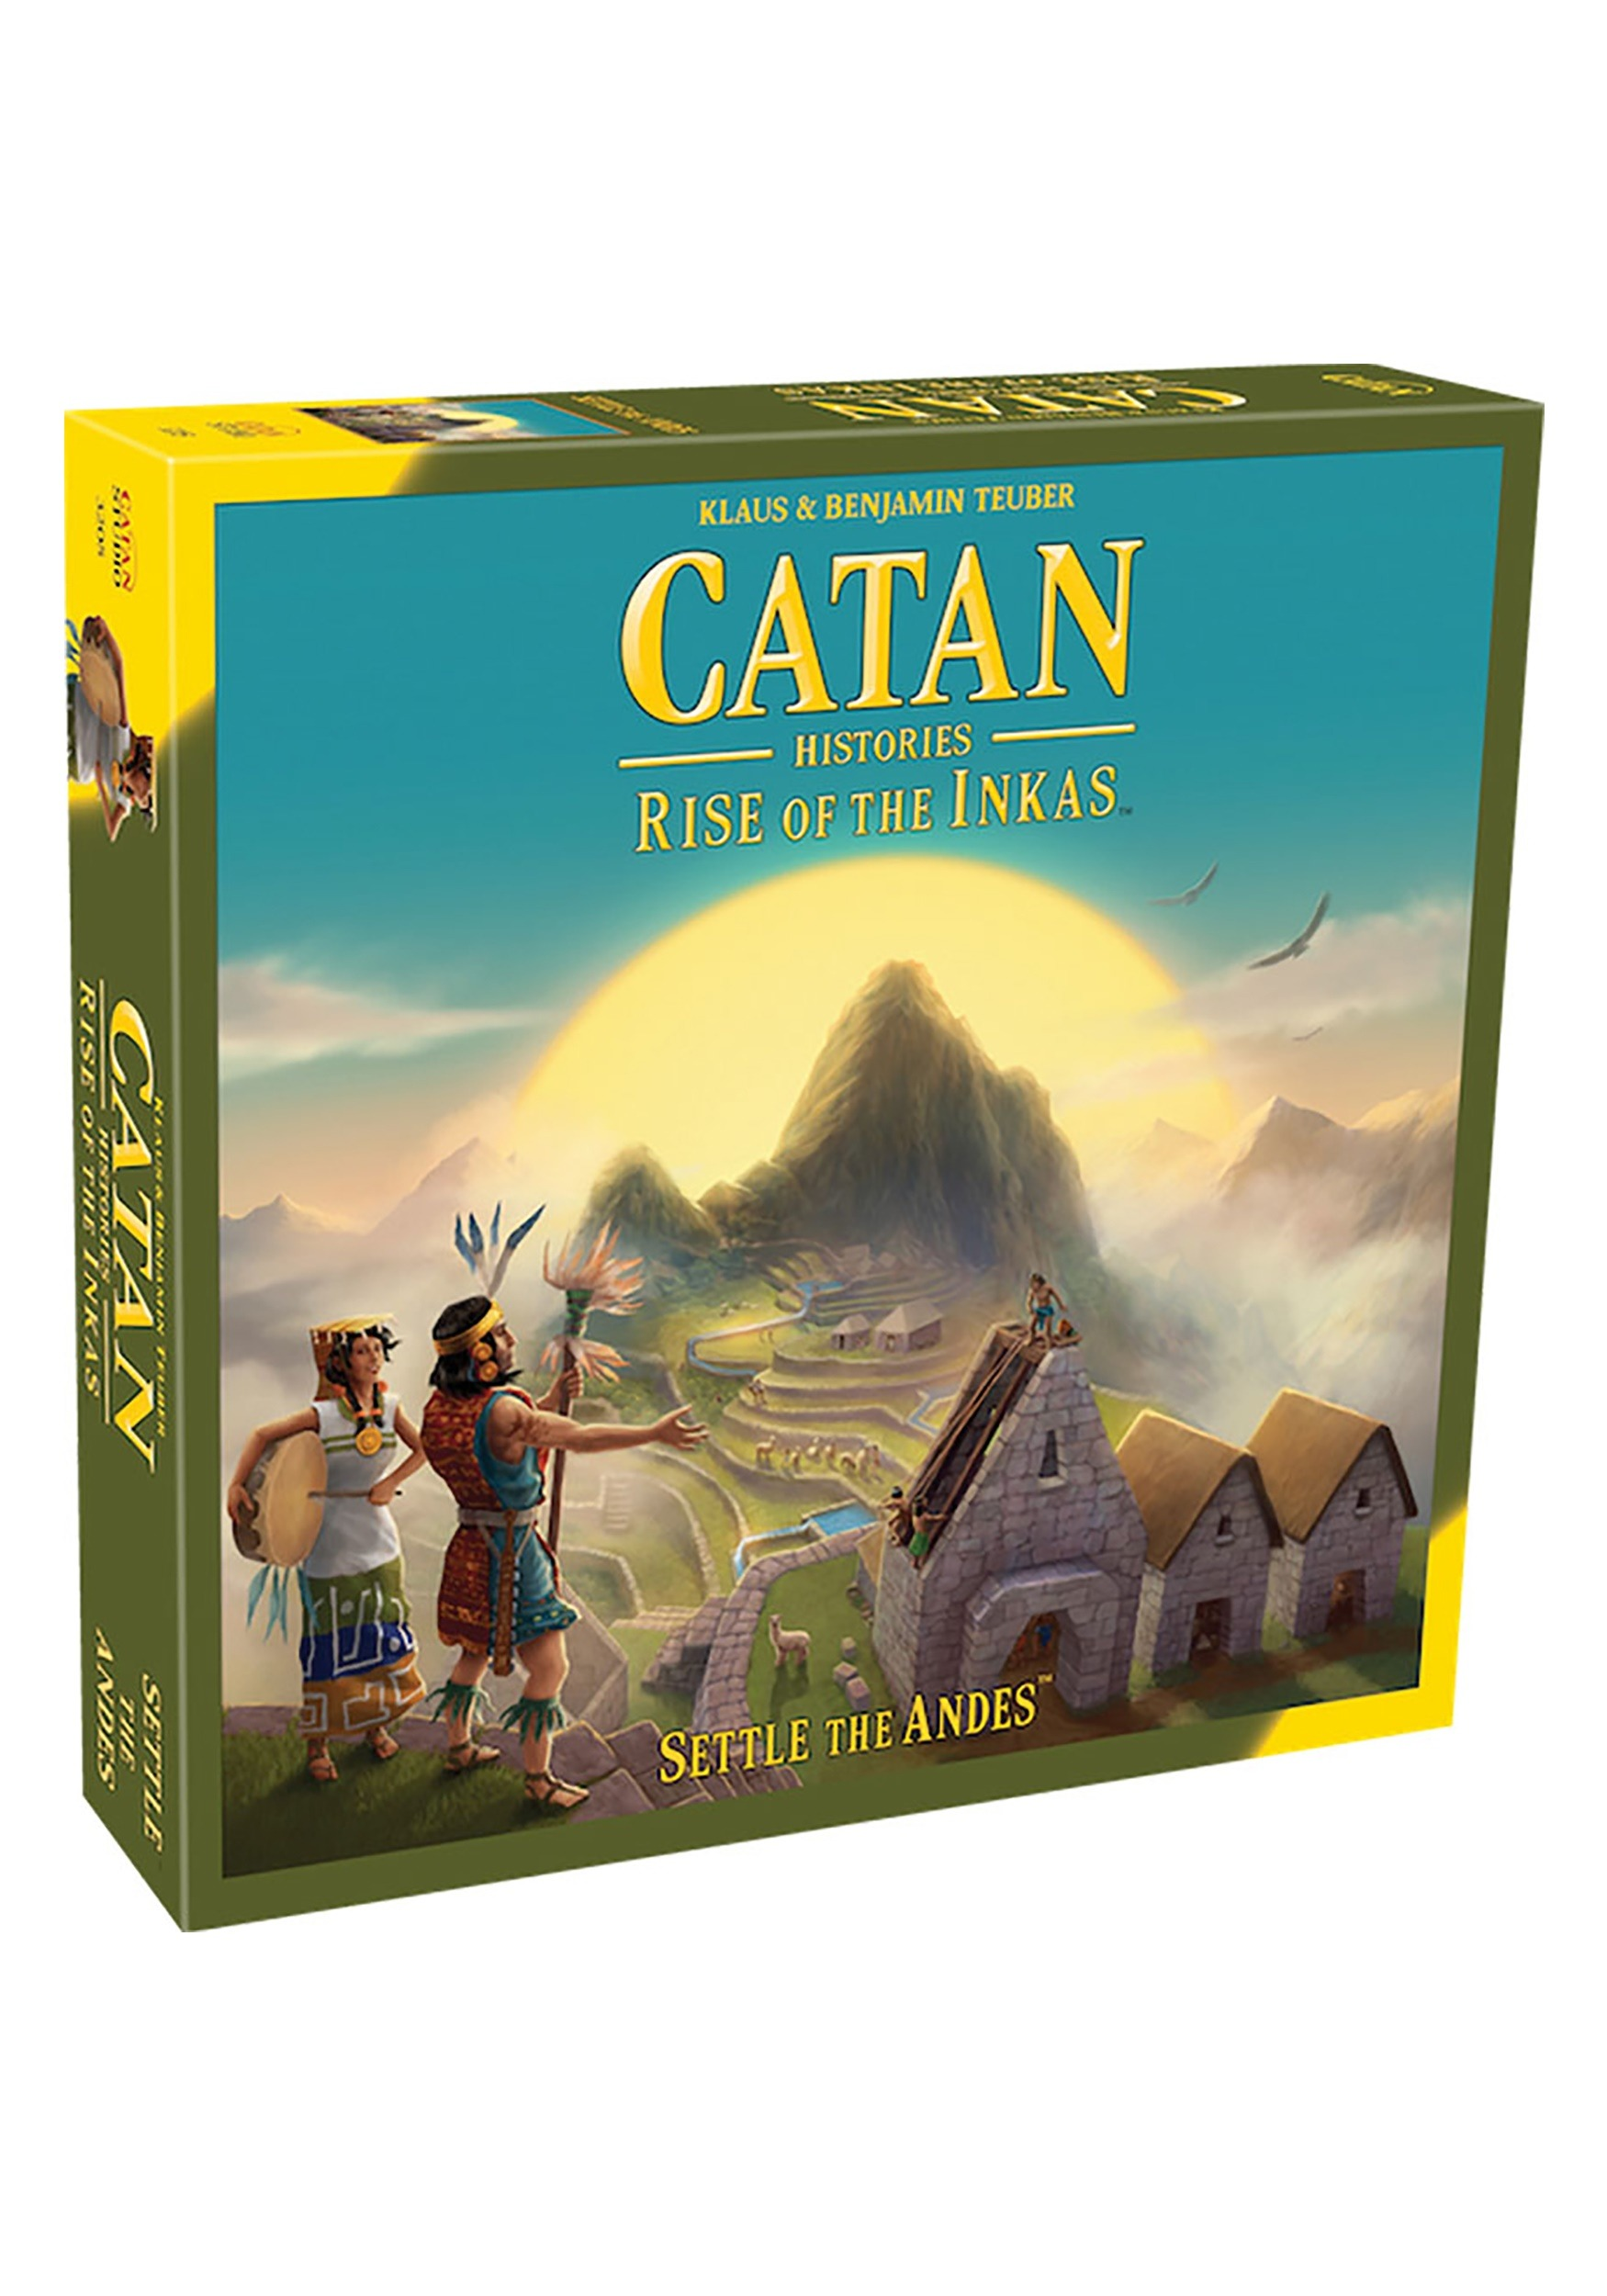 Catan:_Catan_Histories_-_Rise_of_the_Inkas_Board_Game